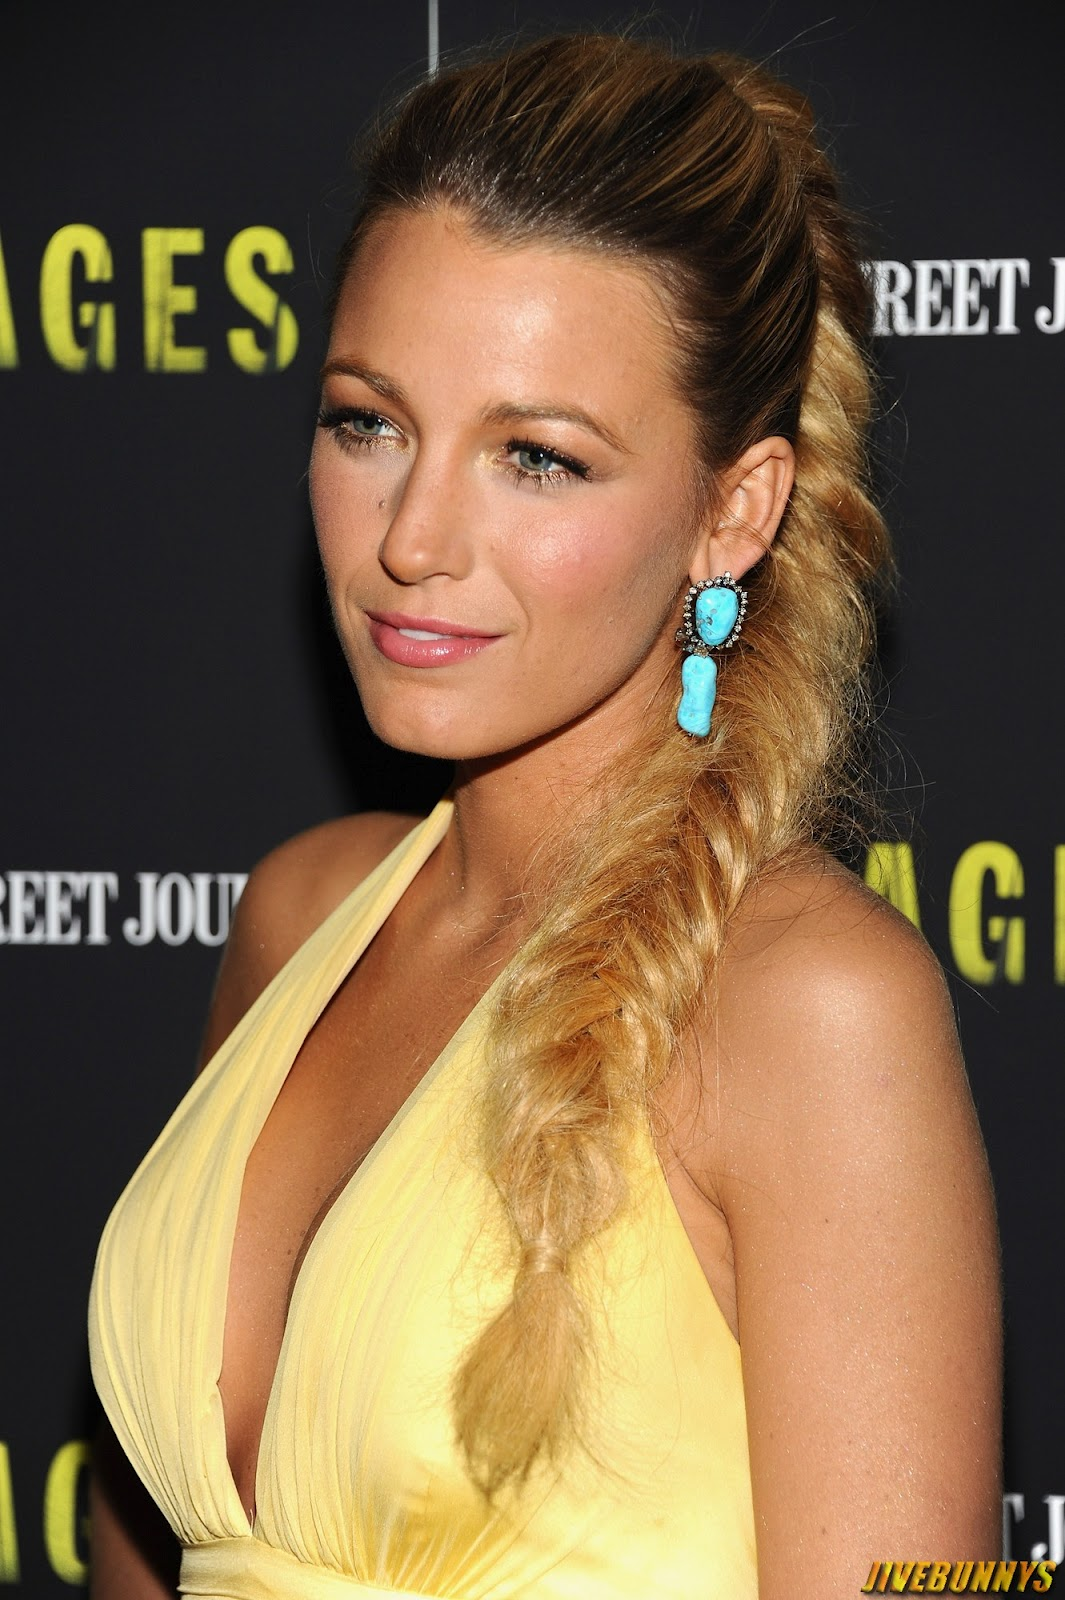 blake lively red dress makeup - photo #39